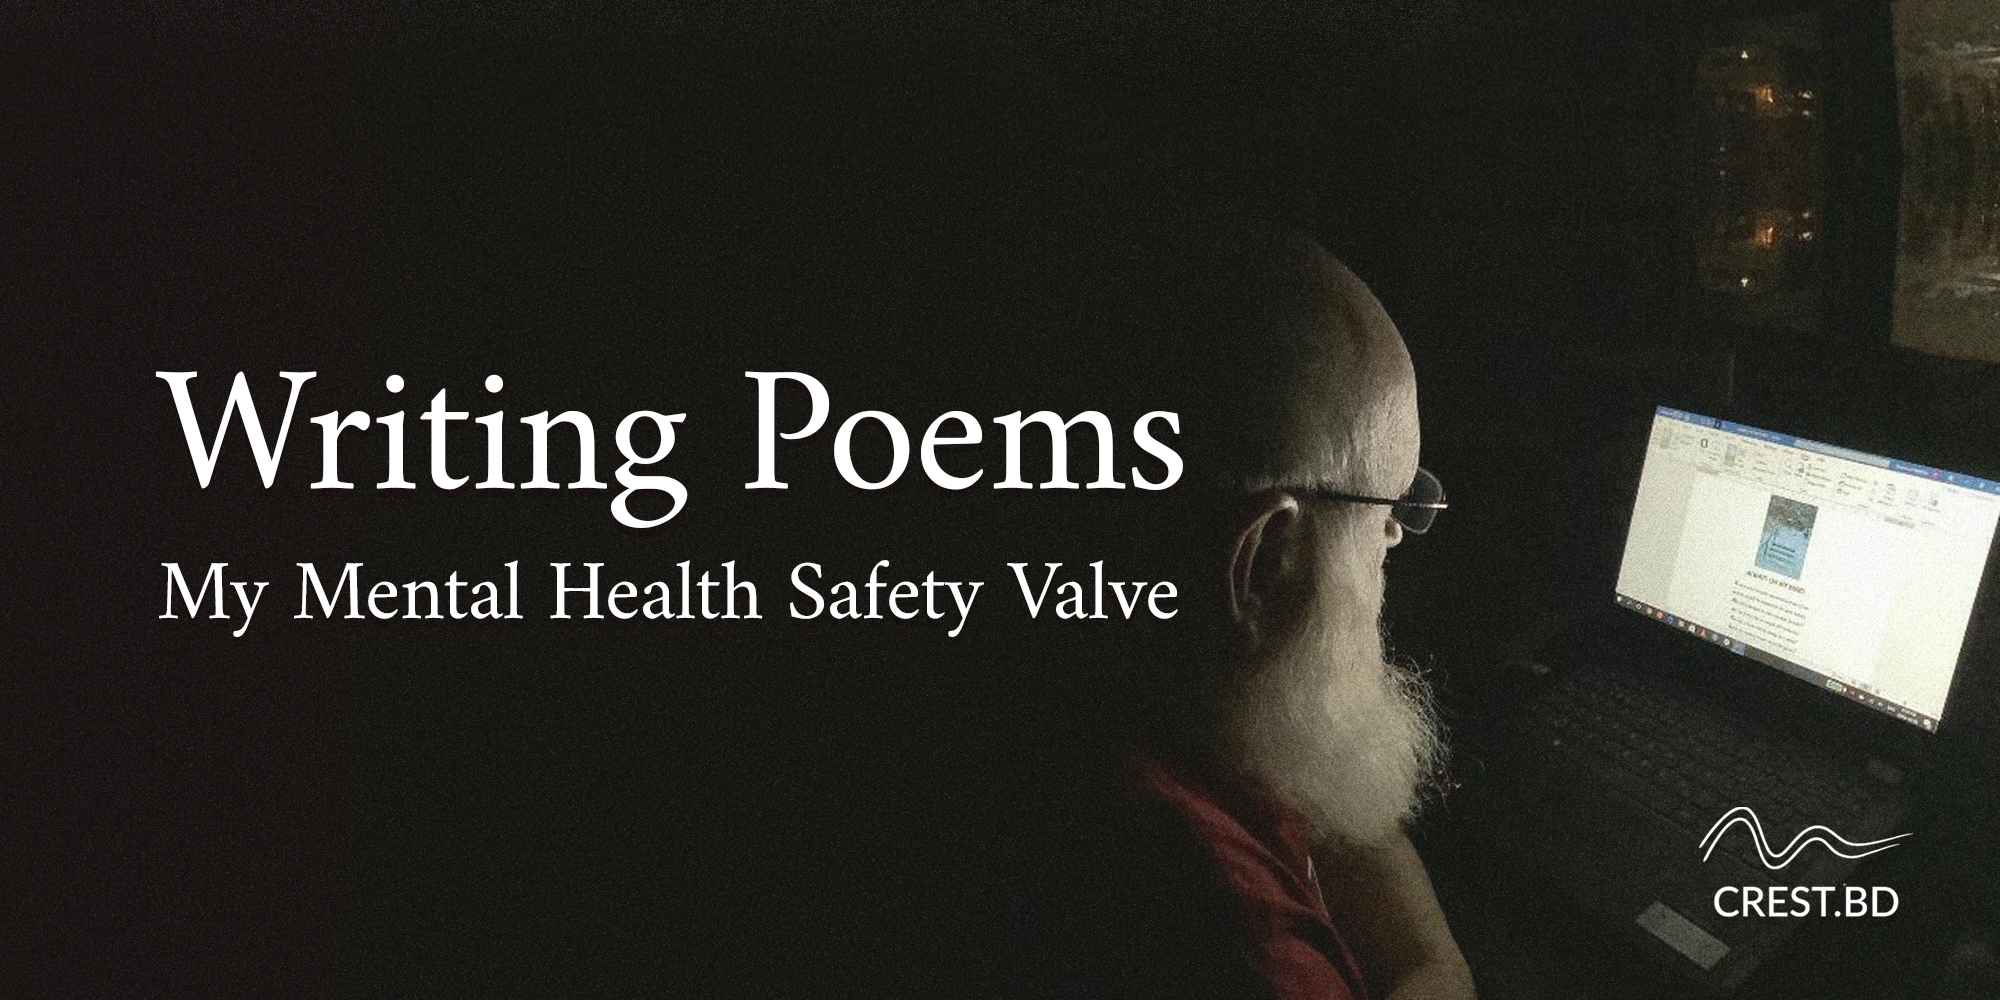 Writing Poems – One of My Mental Health Safety Valves